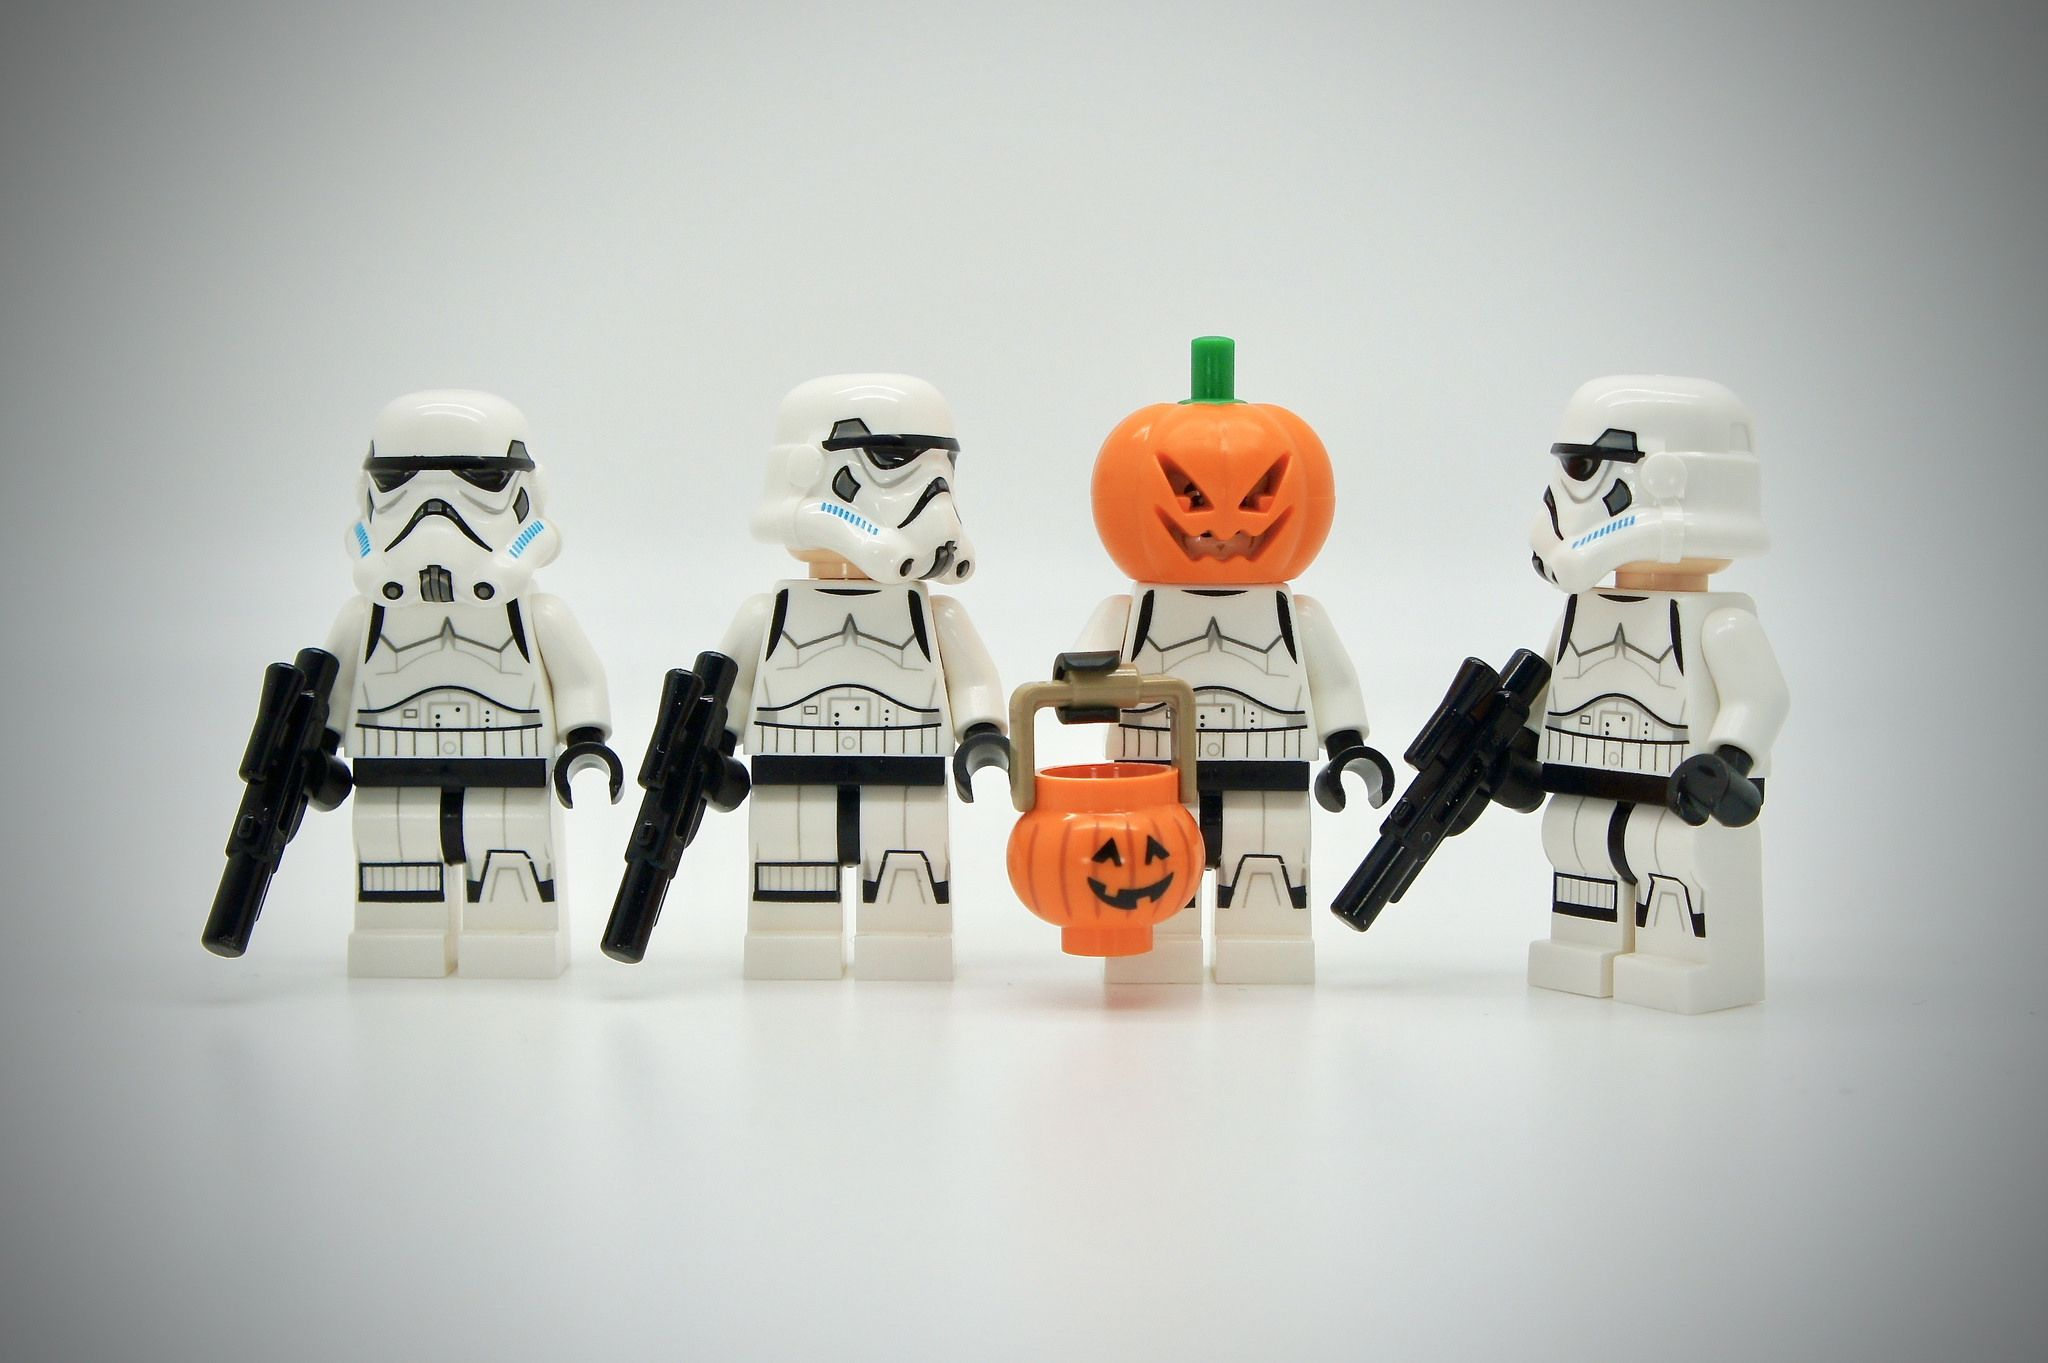 Star Wars Stormtrooper photographic print /'FETCH!/'